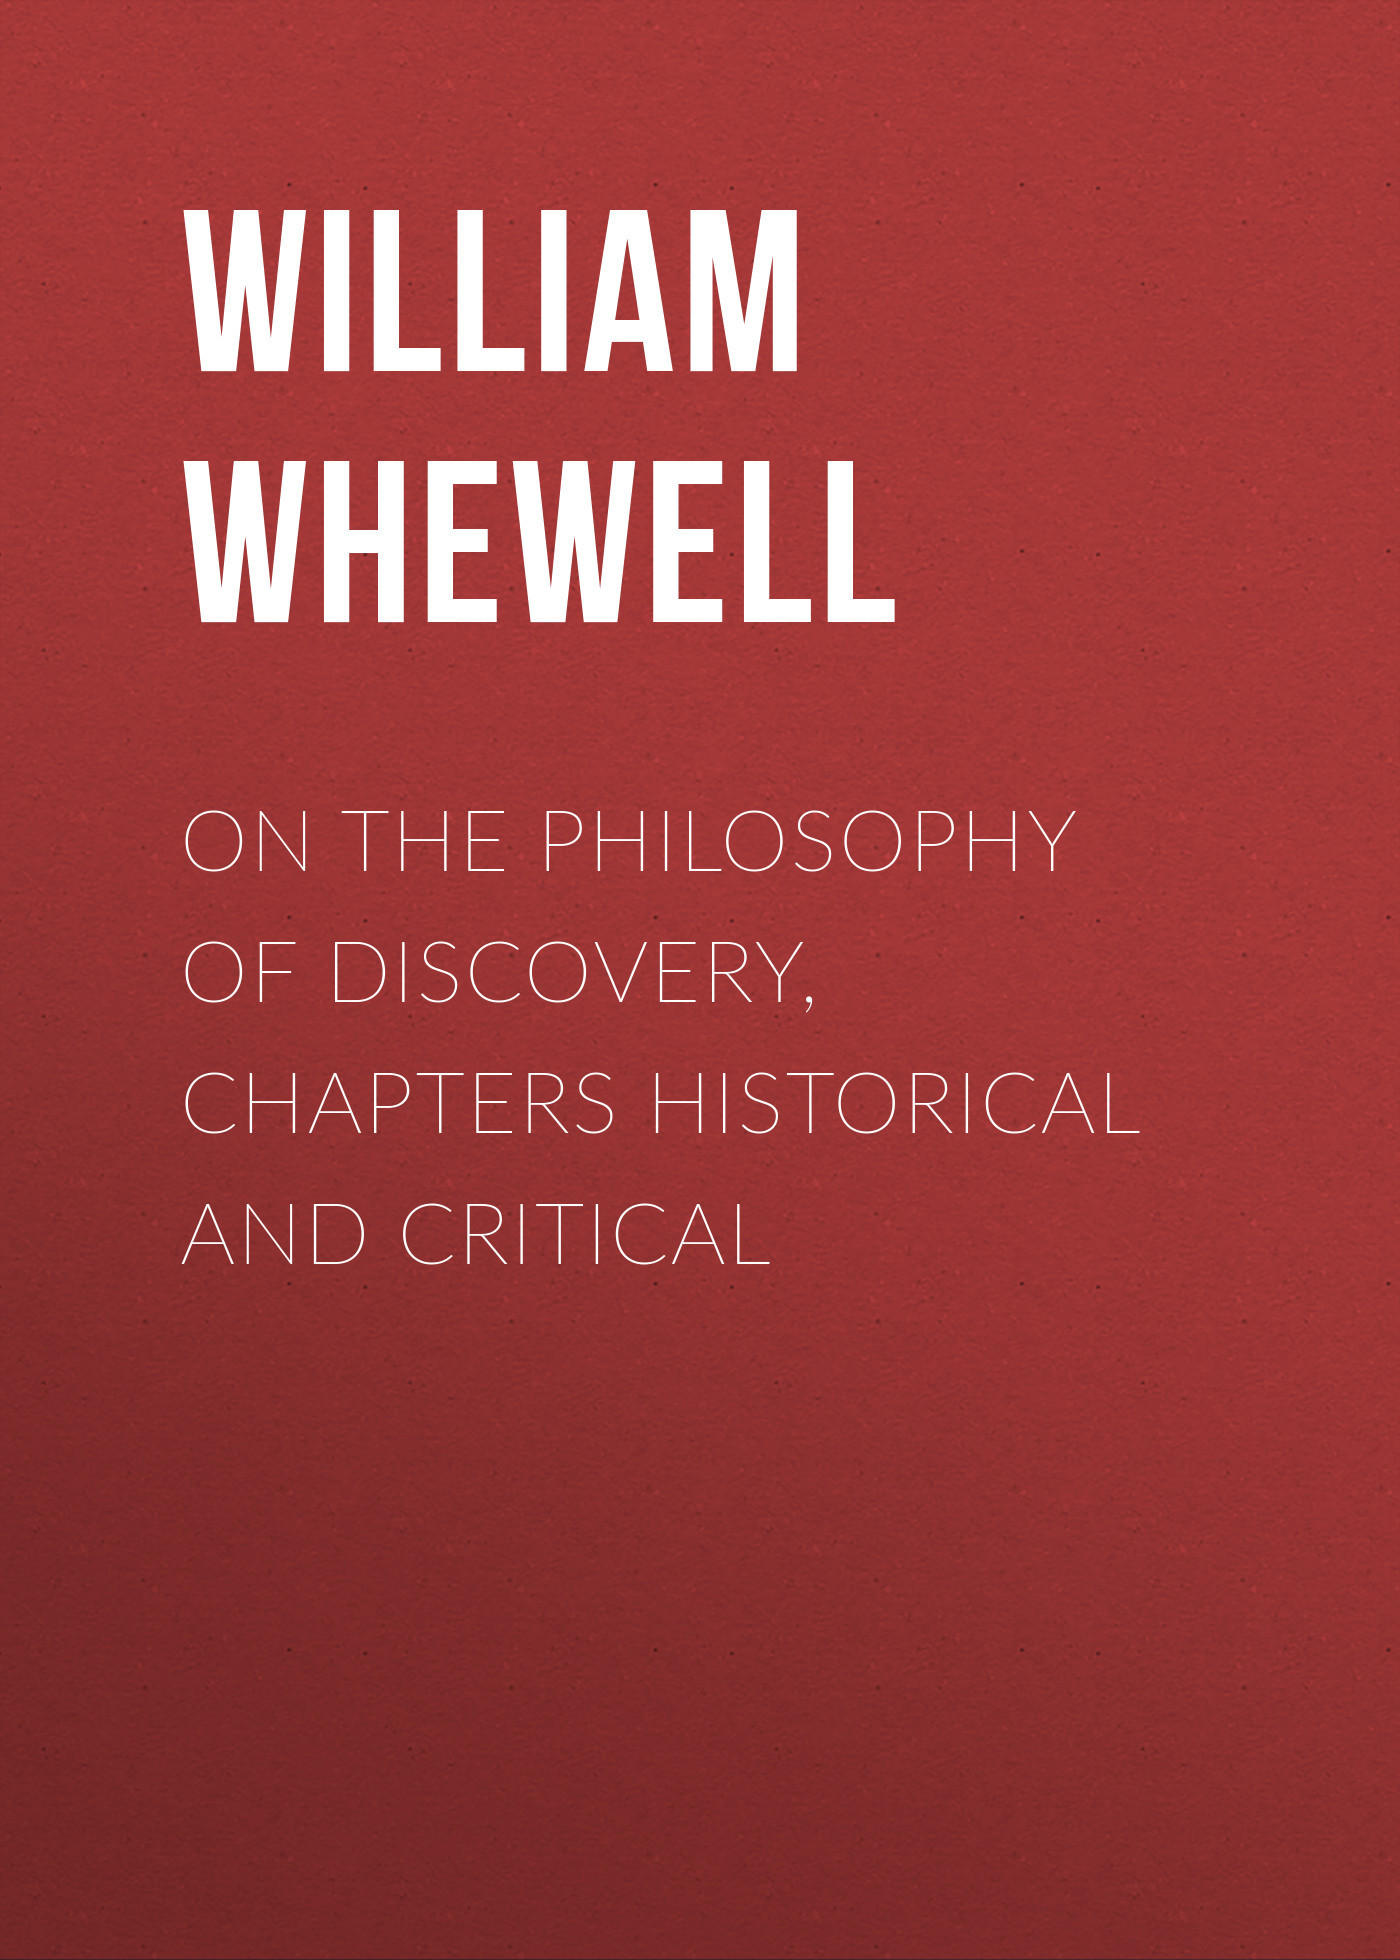 William Whewell On the Philosophy of Discovery, Chapters Historical and Critical